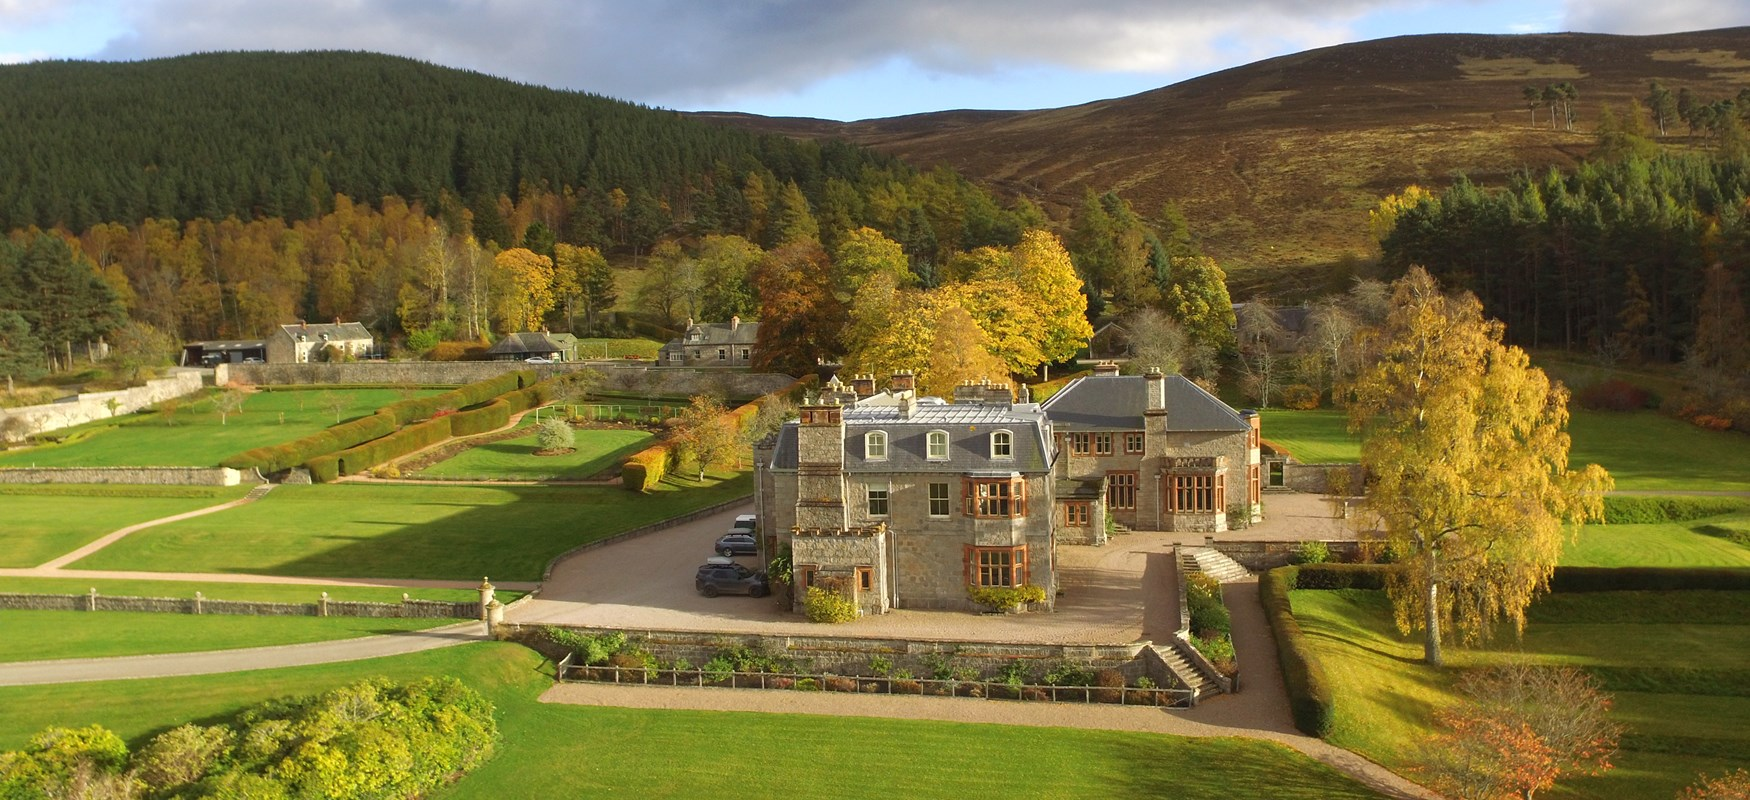 House of Glenmuick is situated in the heart of Royal Deeside and the Cairngorms national park.